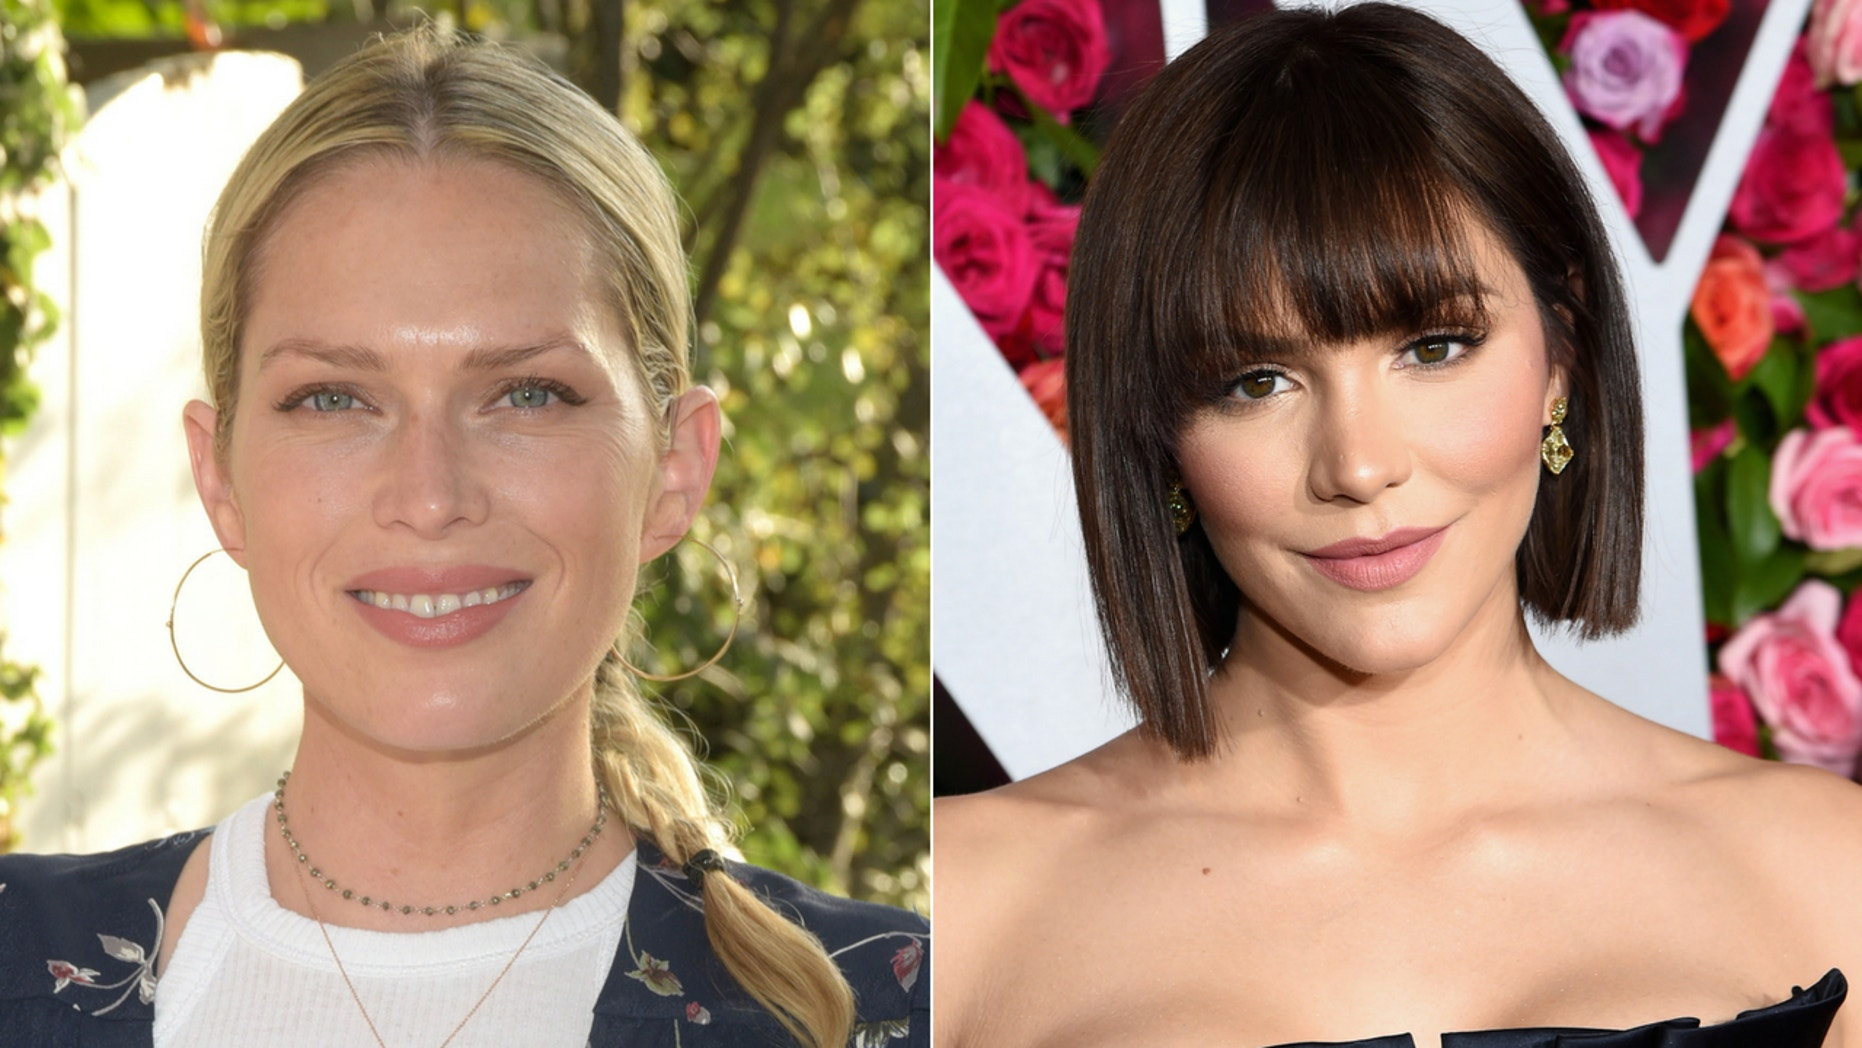 """Katharine McPhee joked to Erin Foster that """"mommy and daddy need alone time"""" during her romantic trip with fiance David Foster."""